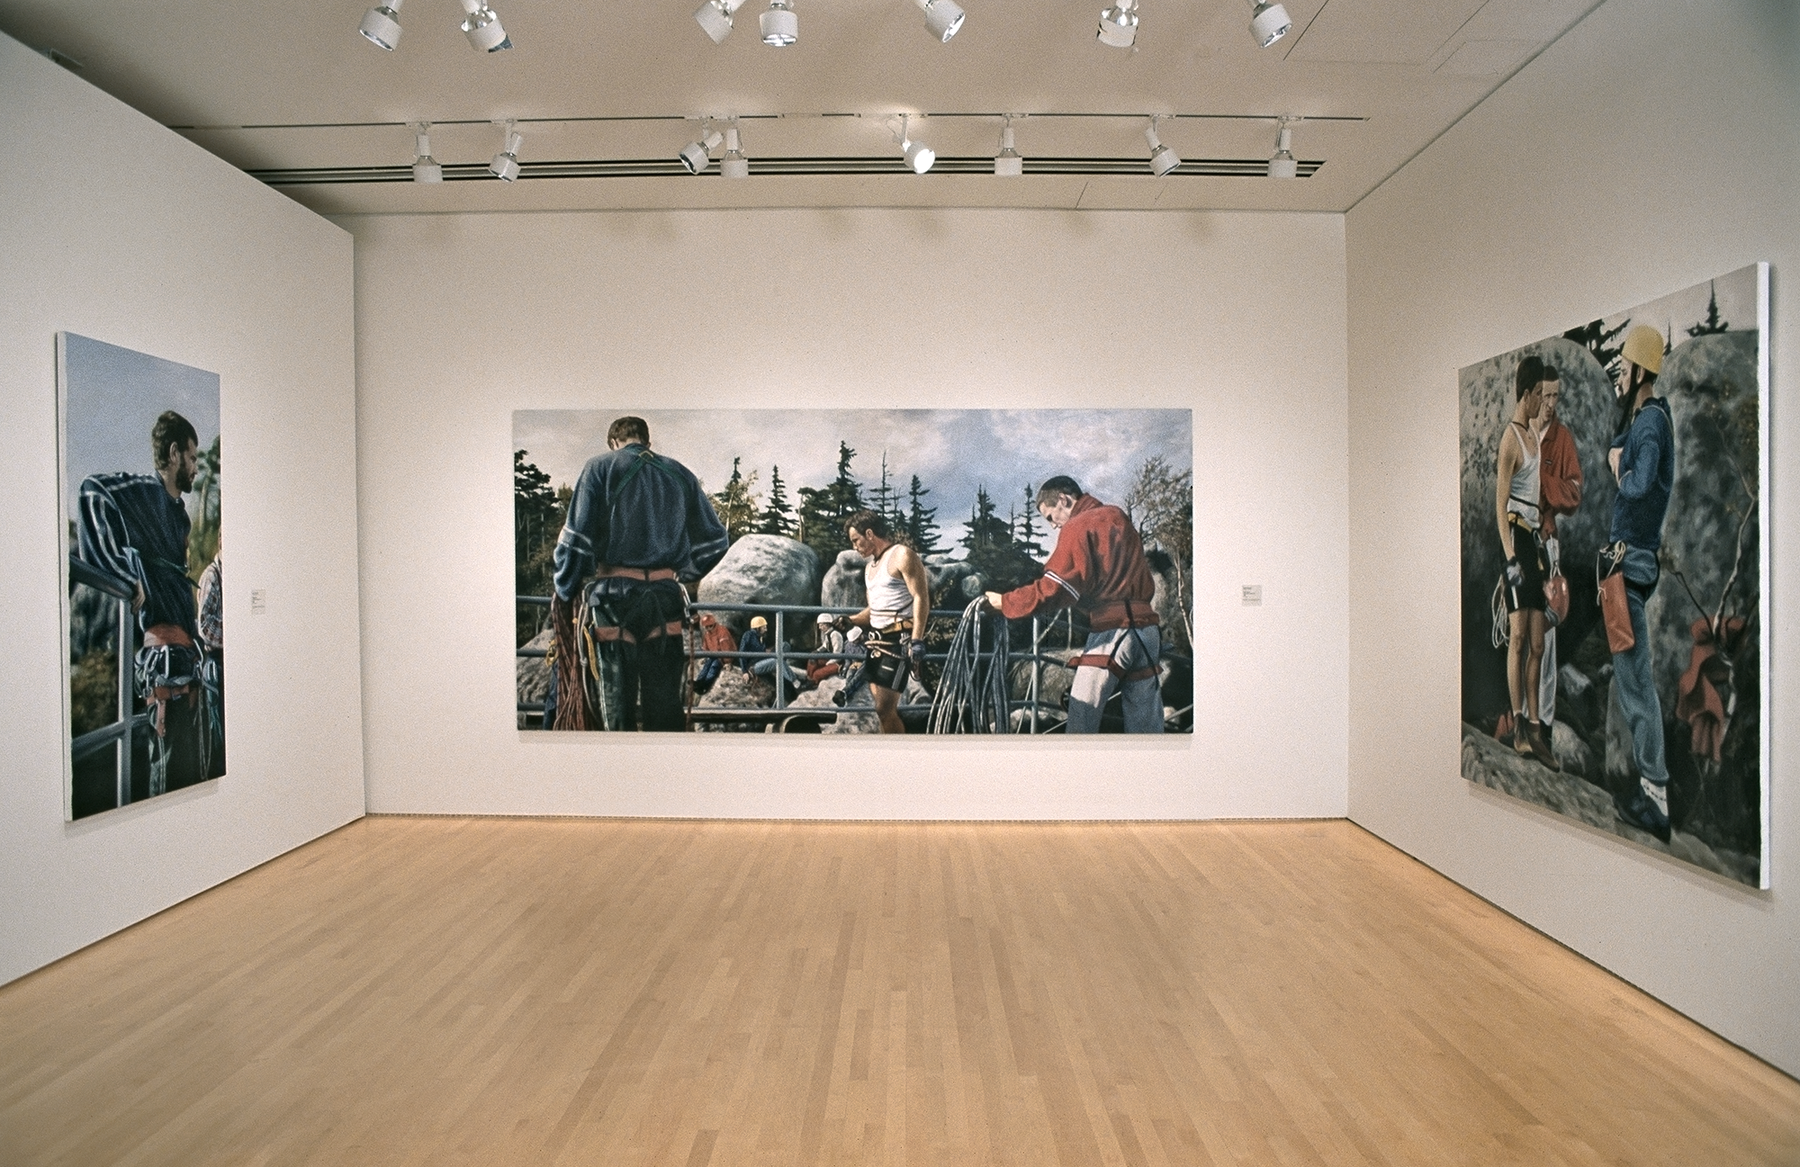 Room featuring three large paintings of rock climbers